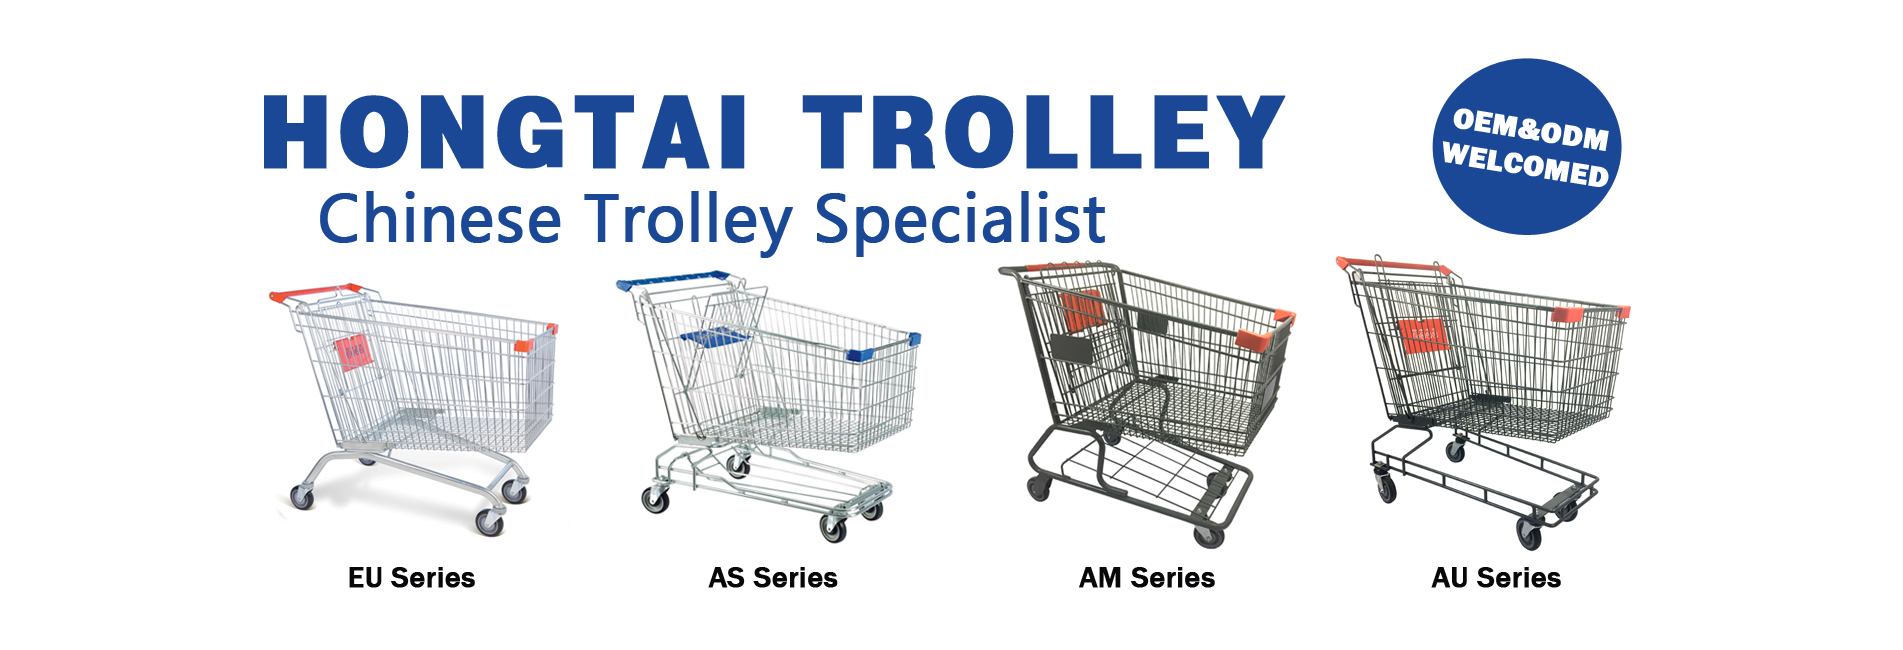 Hongtai shopping trolley